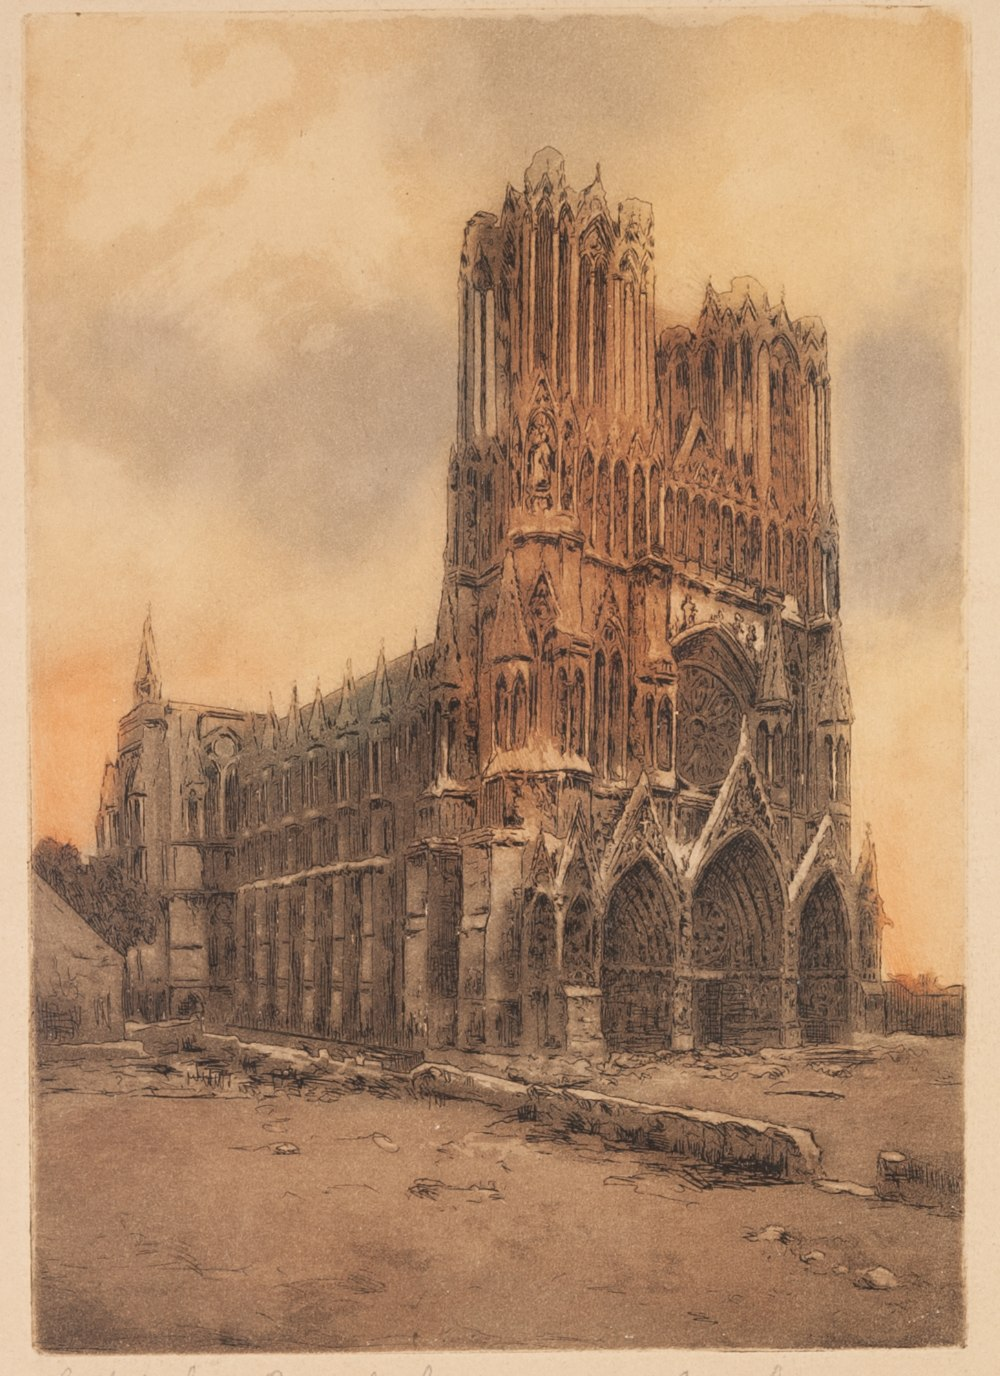 Lot 203 - MARCEL AUGISE (Late 19th/early 20th Century) ETCHING PRINTED IN COLOUR 'Cathedrale de Reims